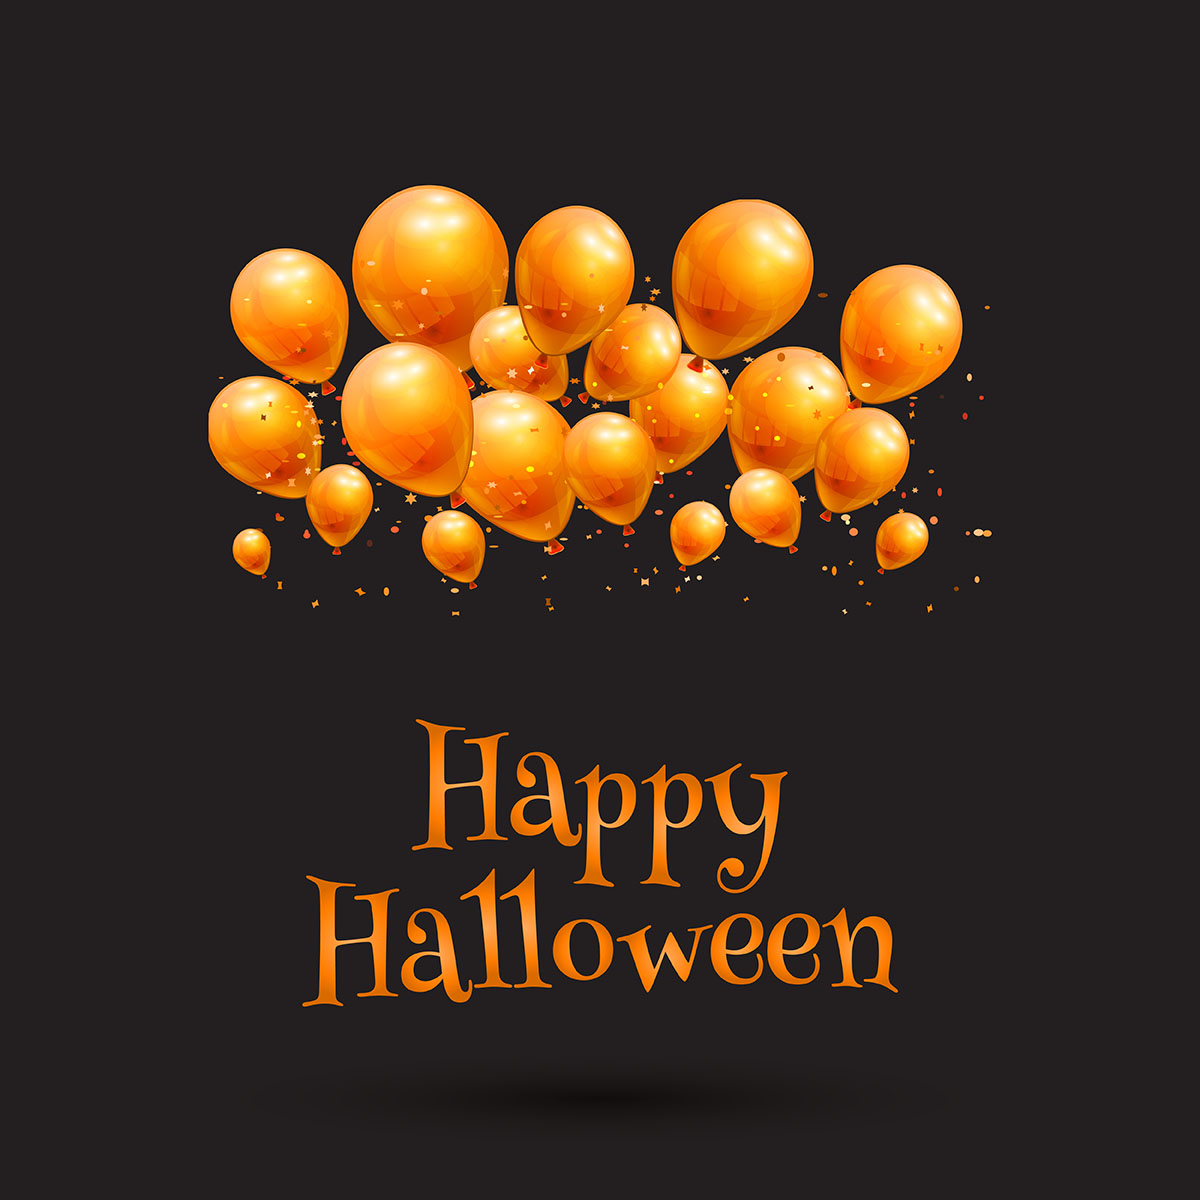 Happy Halloween Balloon Background Download Free Vectors